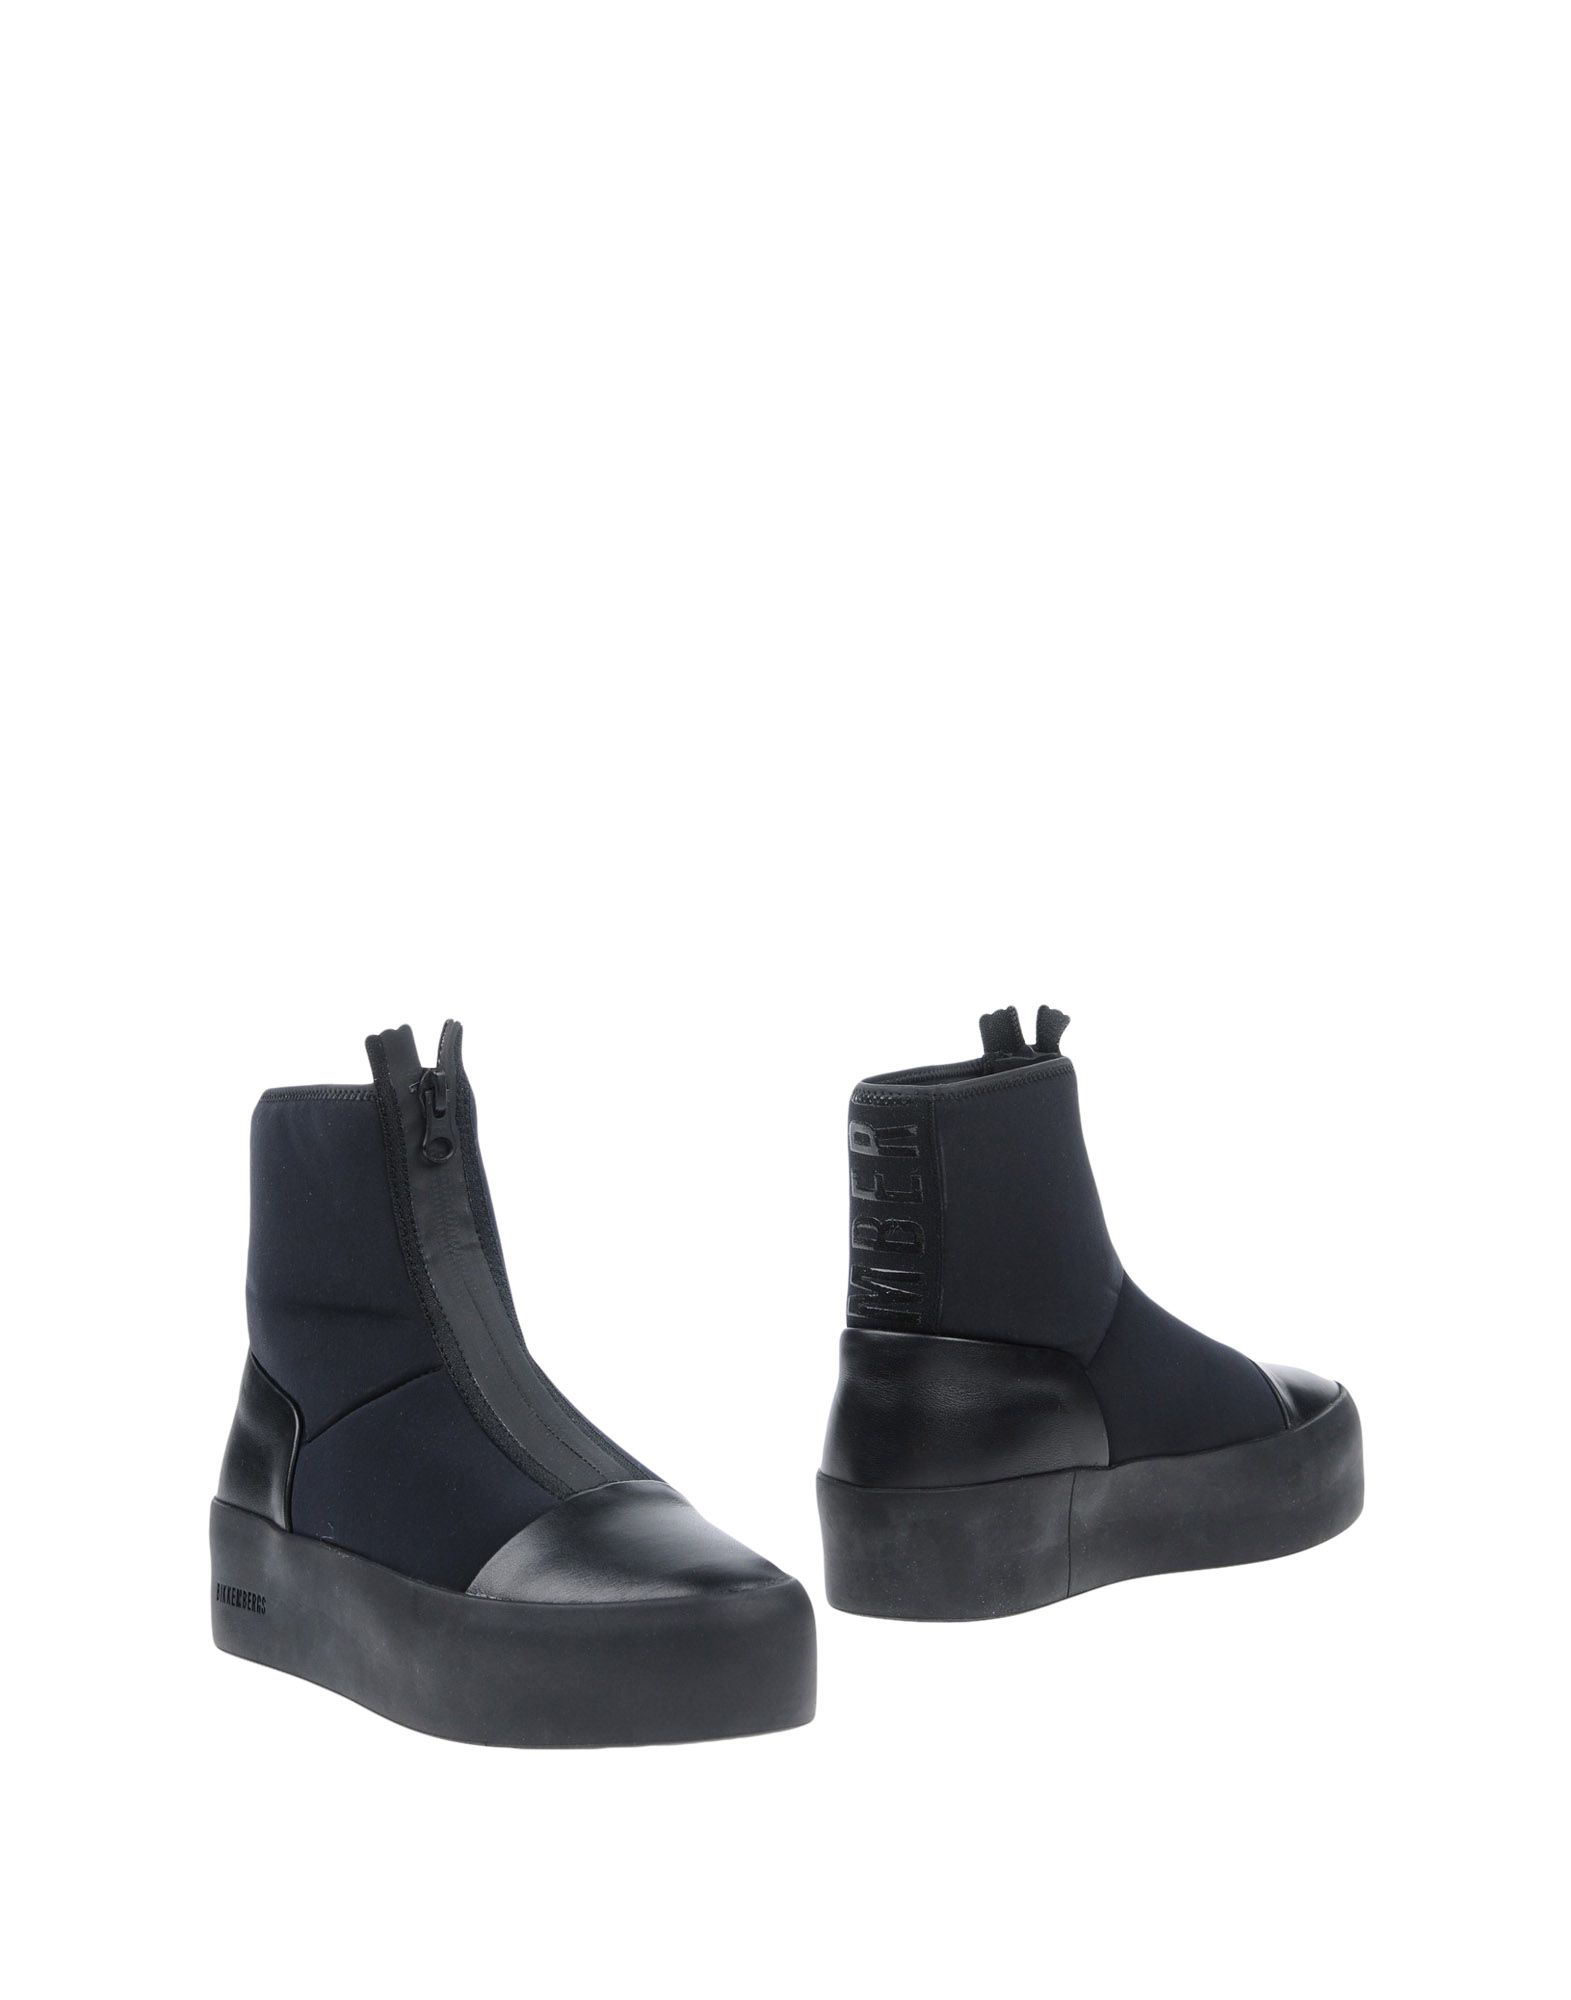 Bikkembergs Ankle Bikkembergs Boot - Women Bikkembergs Ankle Ankle Boots online on  Canada - 11304675PW b9470c